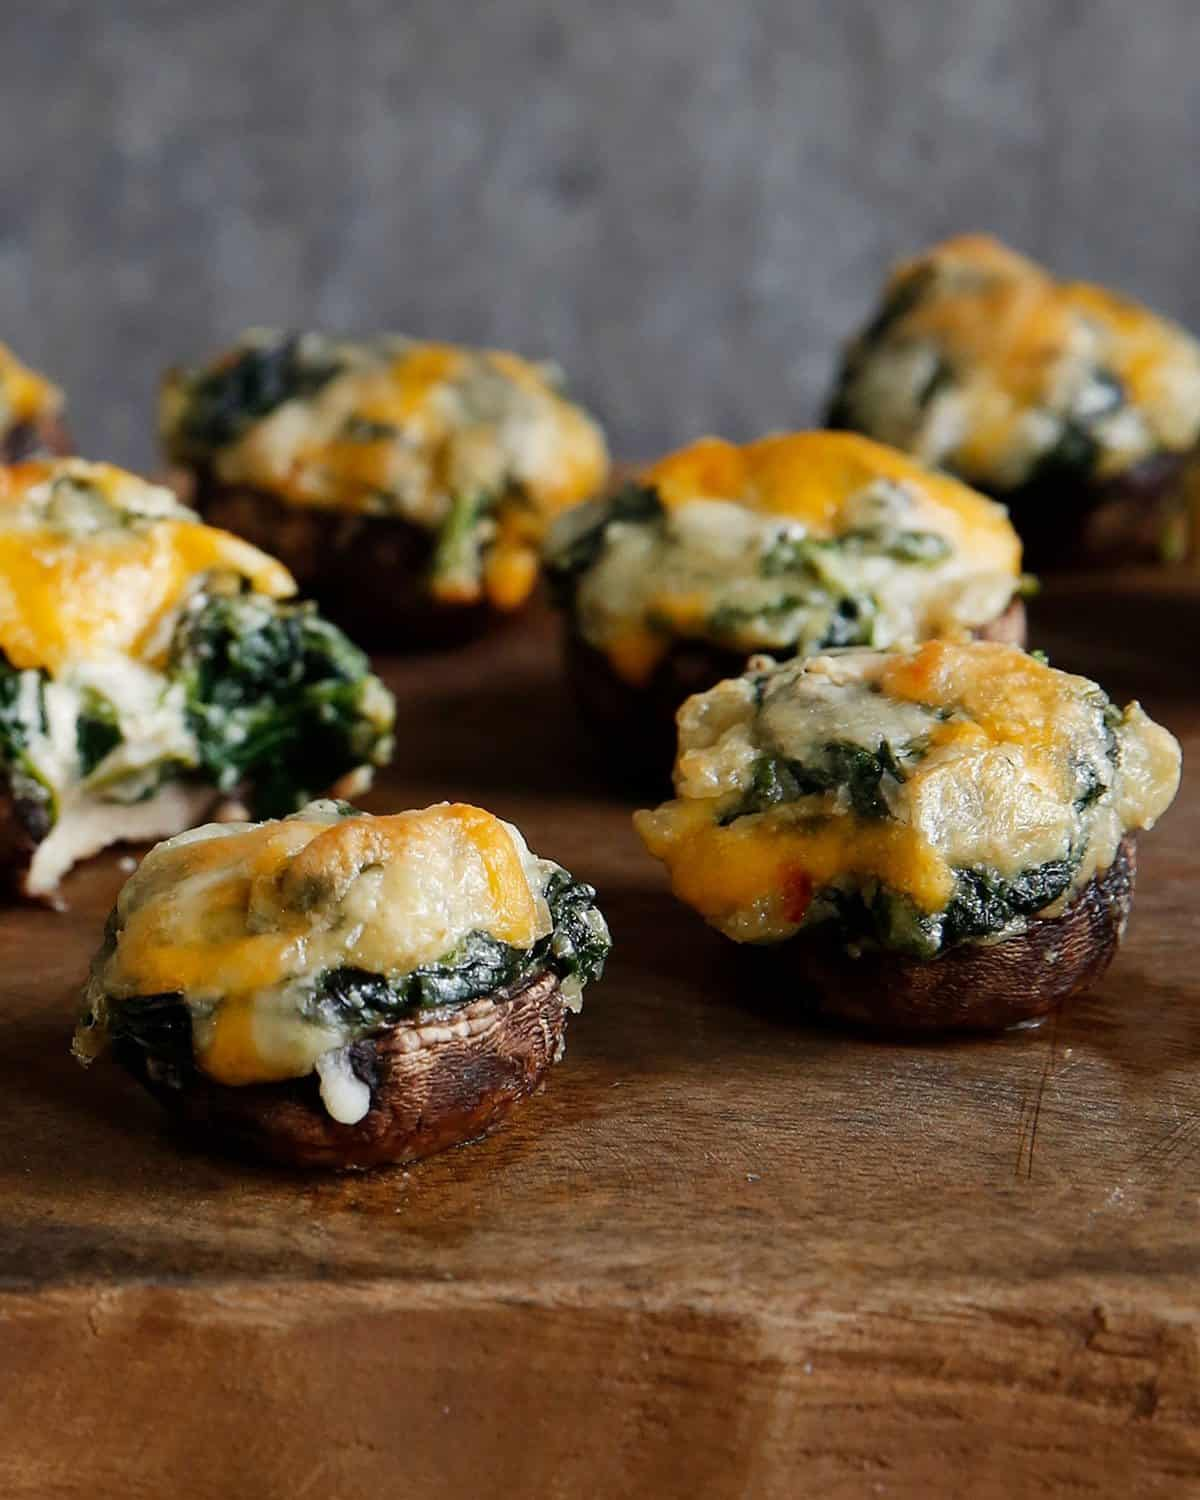 Spinach Dip Stuffed Mushrooms (dairy-free, healthy, paleo) - Lexi's Clean Kitchen #stuffedmushrooms #spinachdip #appetizers #healthy